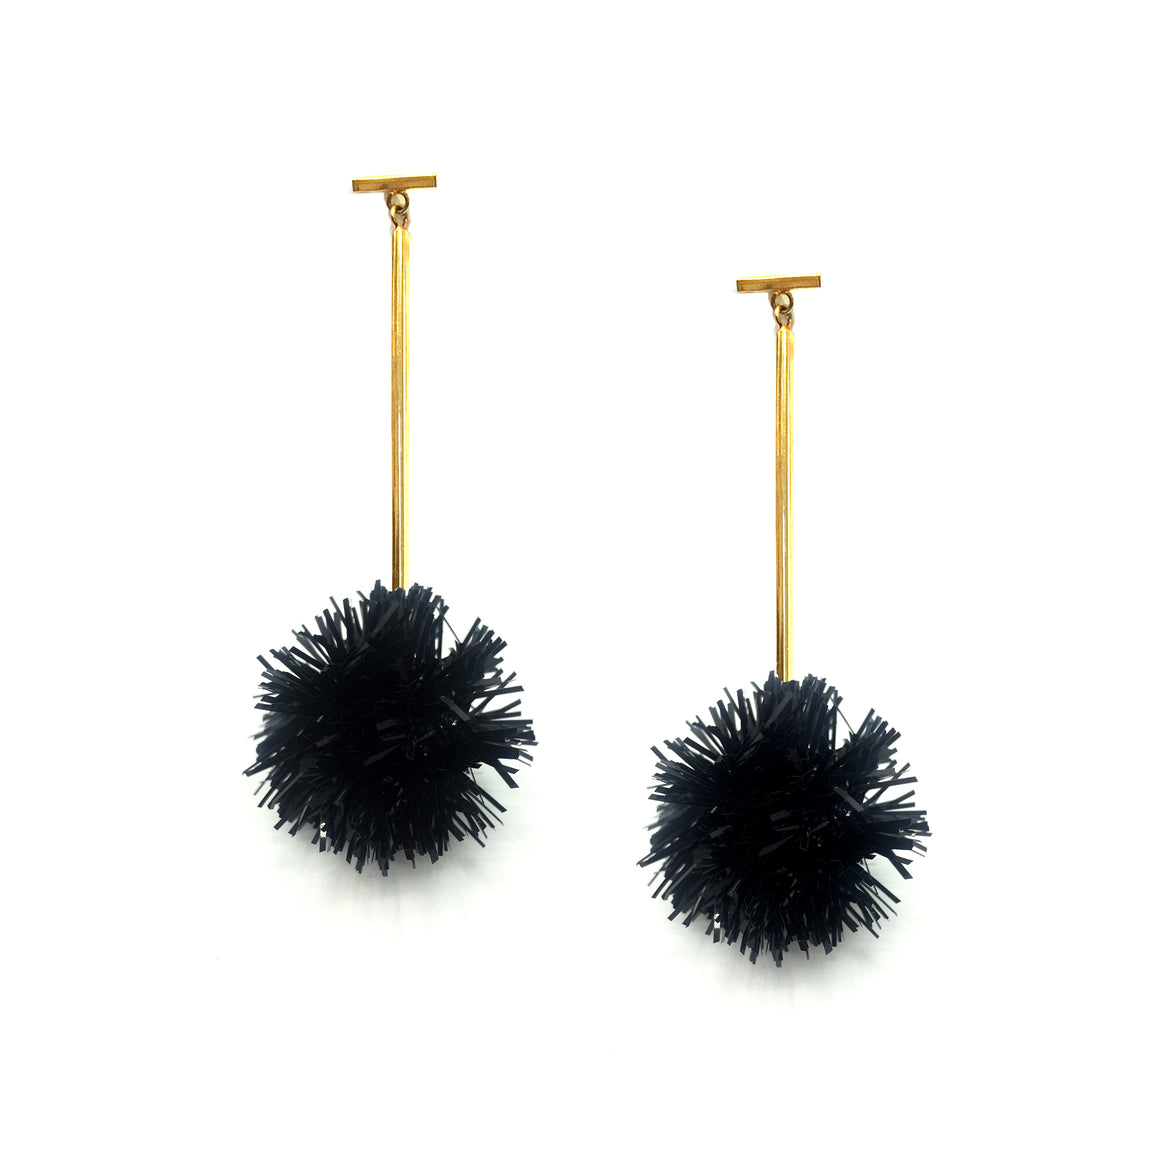 "1"" Black Lurex Pom Pom T Bar Earrings, Earrings, Tuleste, Tuleste"